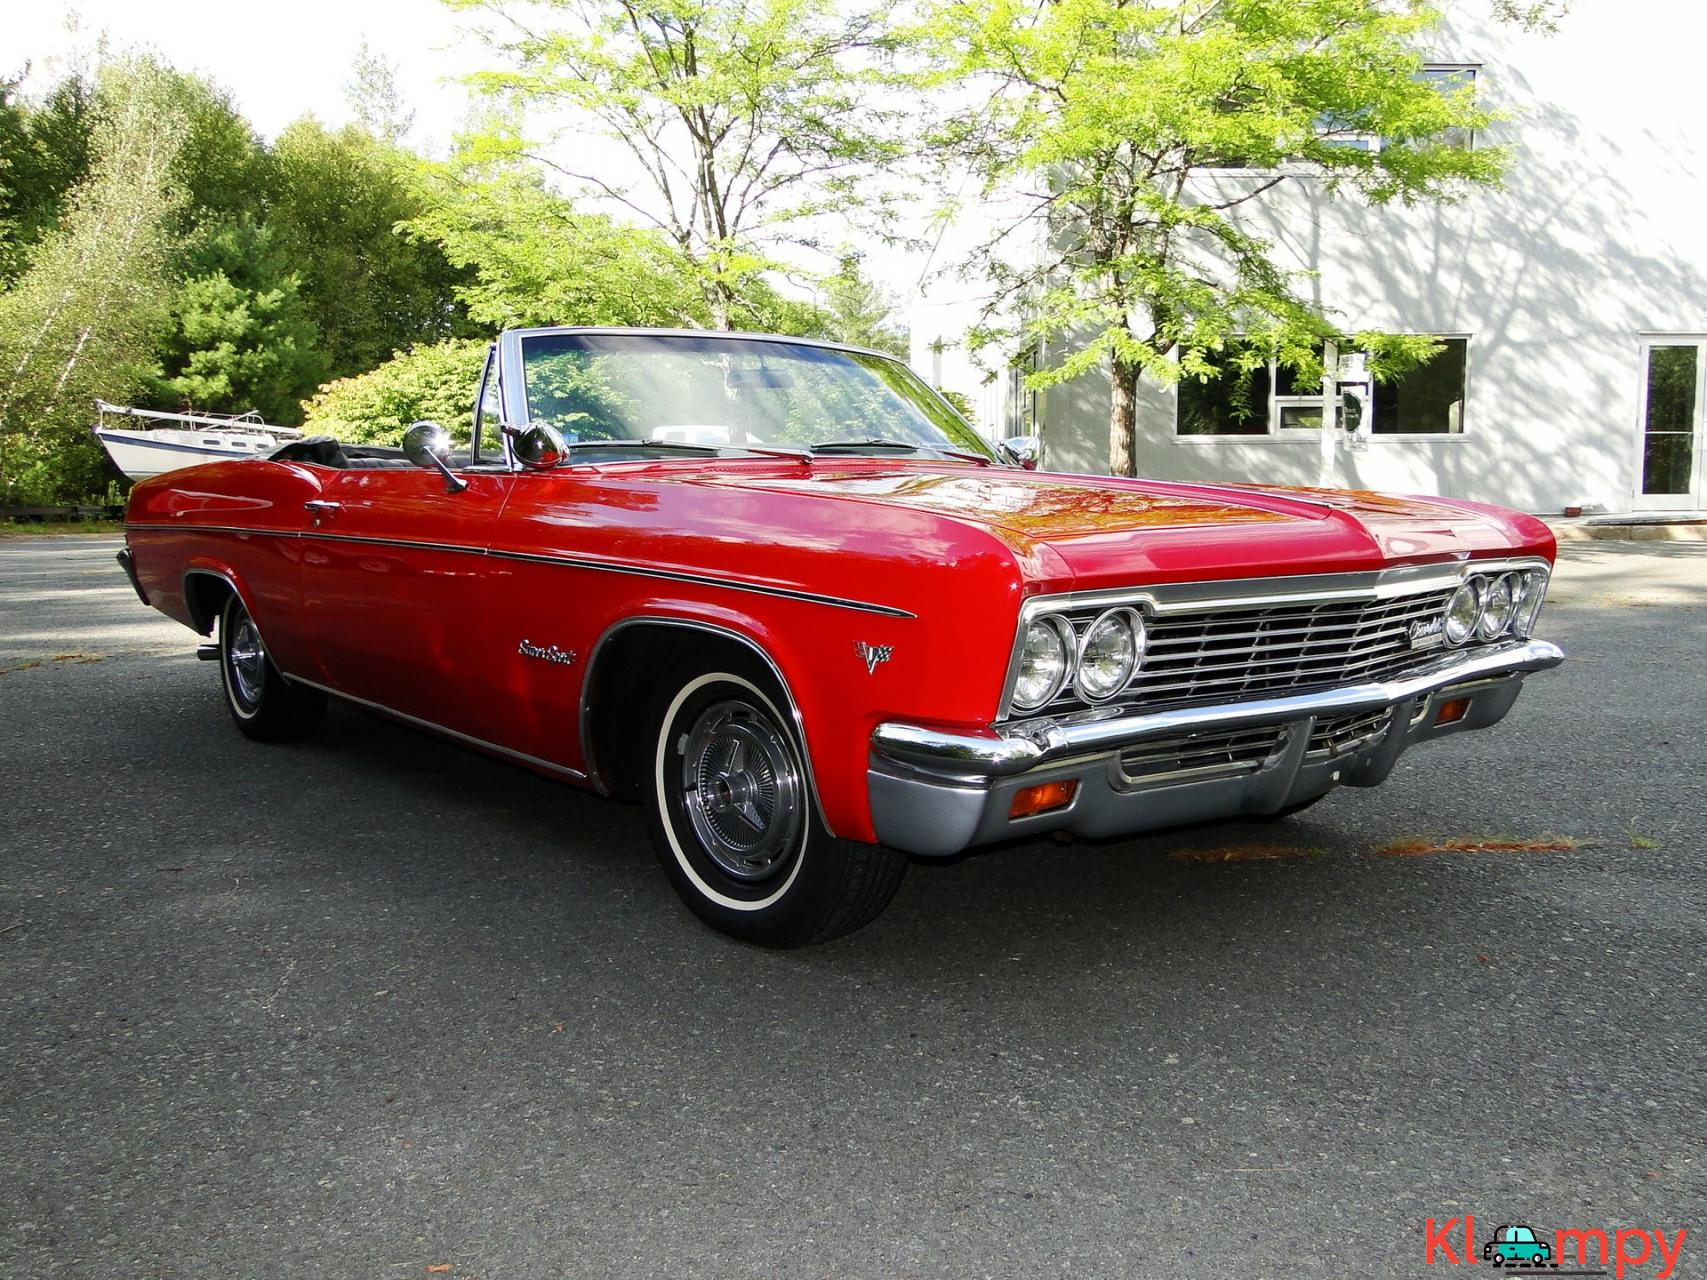 1966 Chevrolet Impala SS Convertible Regal Red V8 - 2/23